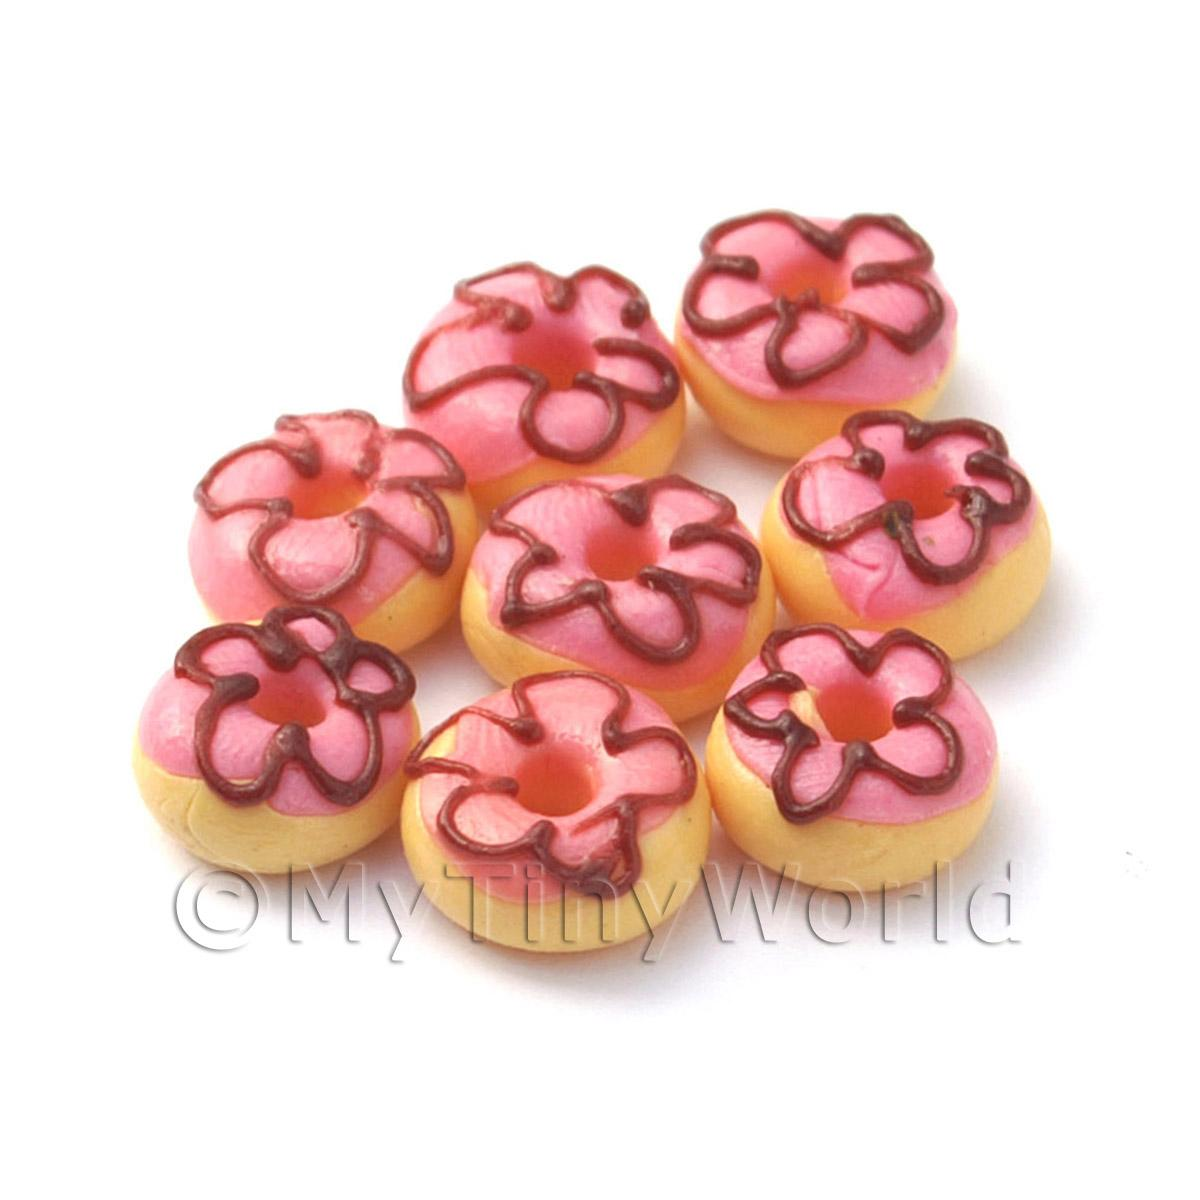 Dolls House Miniature Pink Flower Shaped Donuts Dolls, Bears